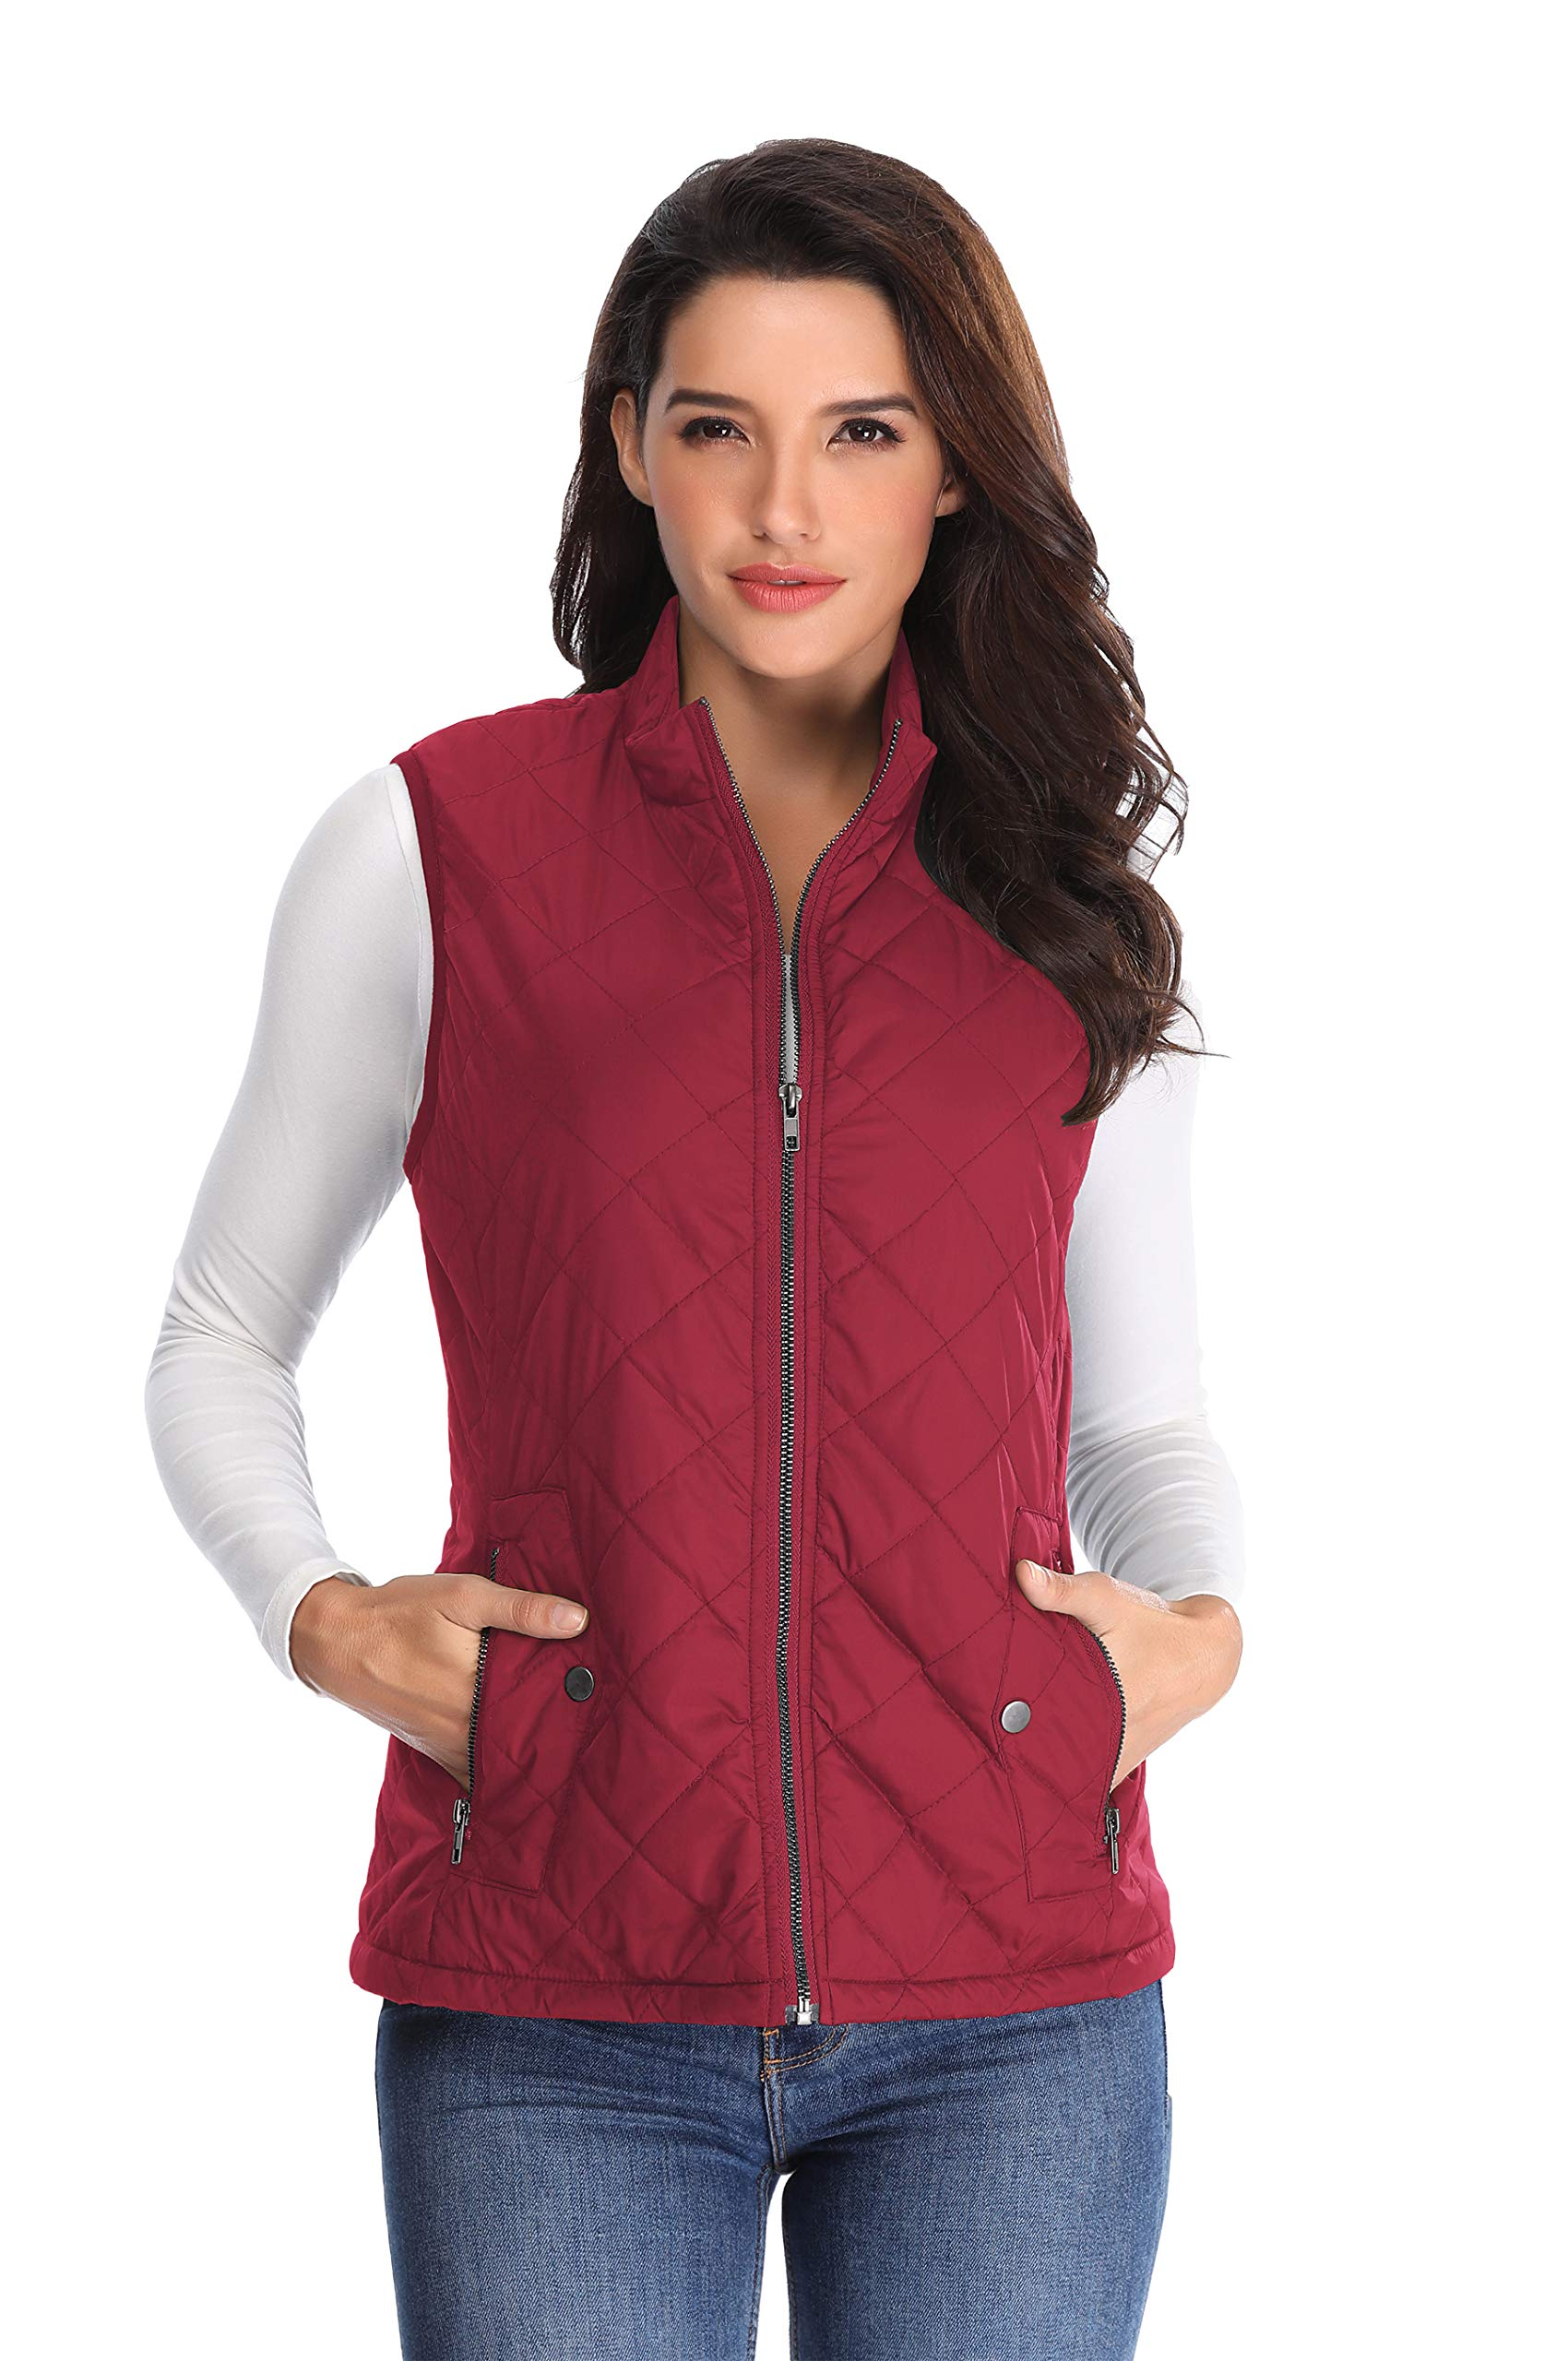 MISS MOLY Women's Lightweight Quilted Zip Vest Stand Collar Gilet Padded Sleeveless Gilet Vest-Wine Red XS by MISS MOLY